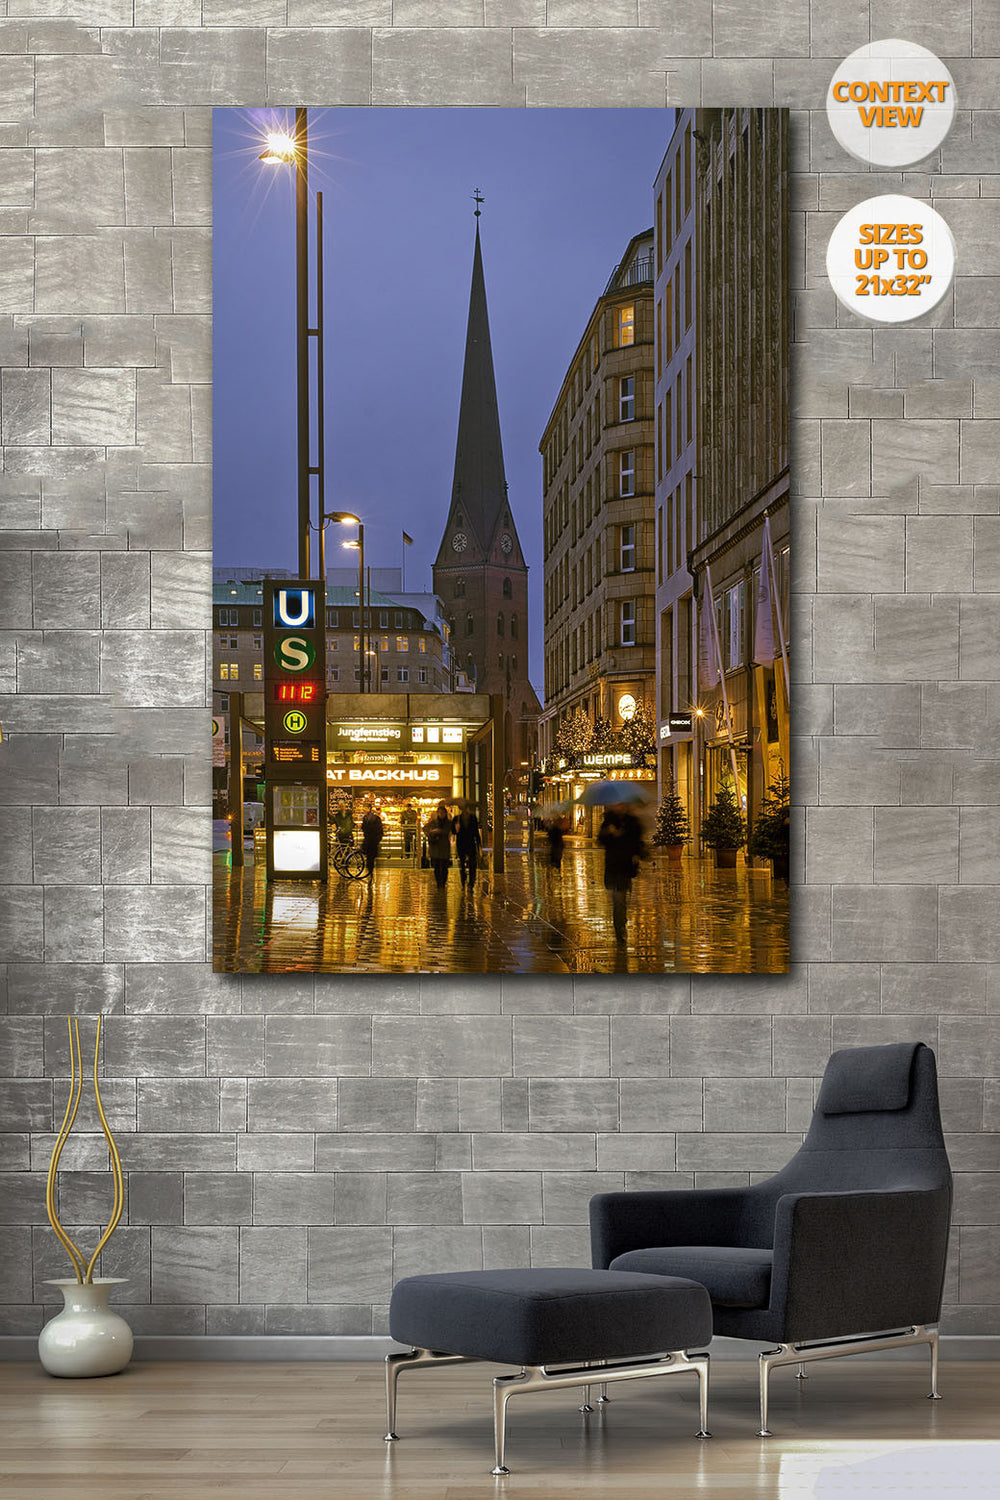 Jungfernstieg, Hamburg, Germany. | View of the Print hanged in Living Room.